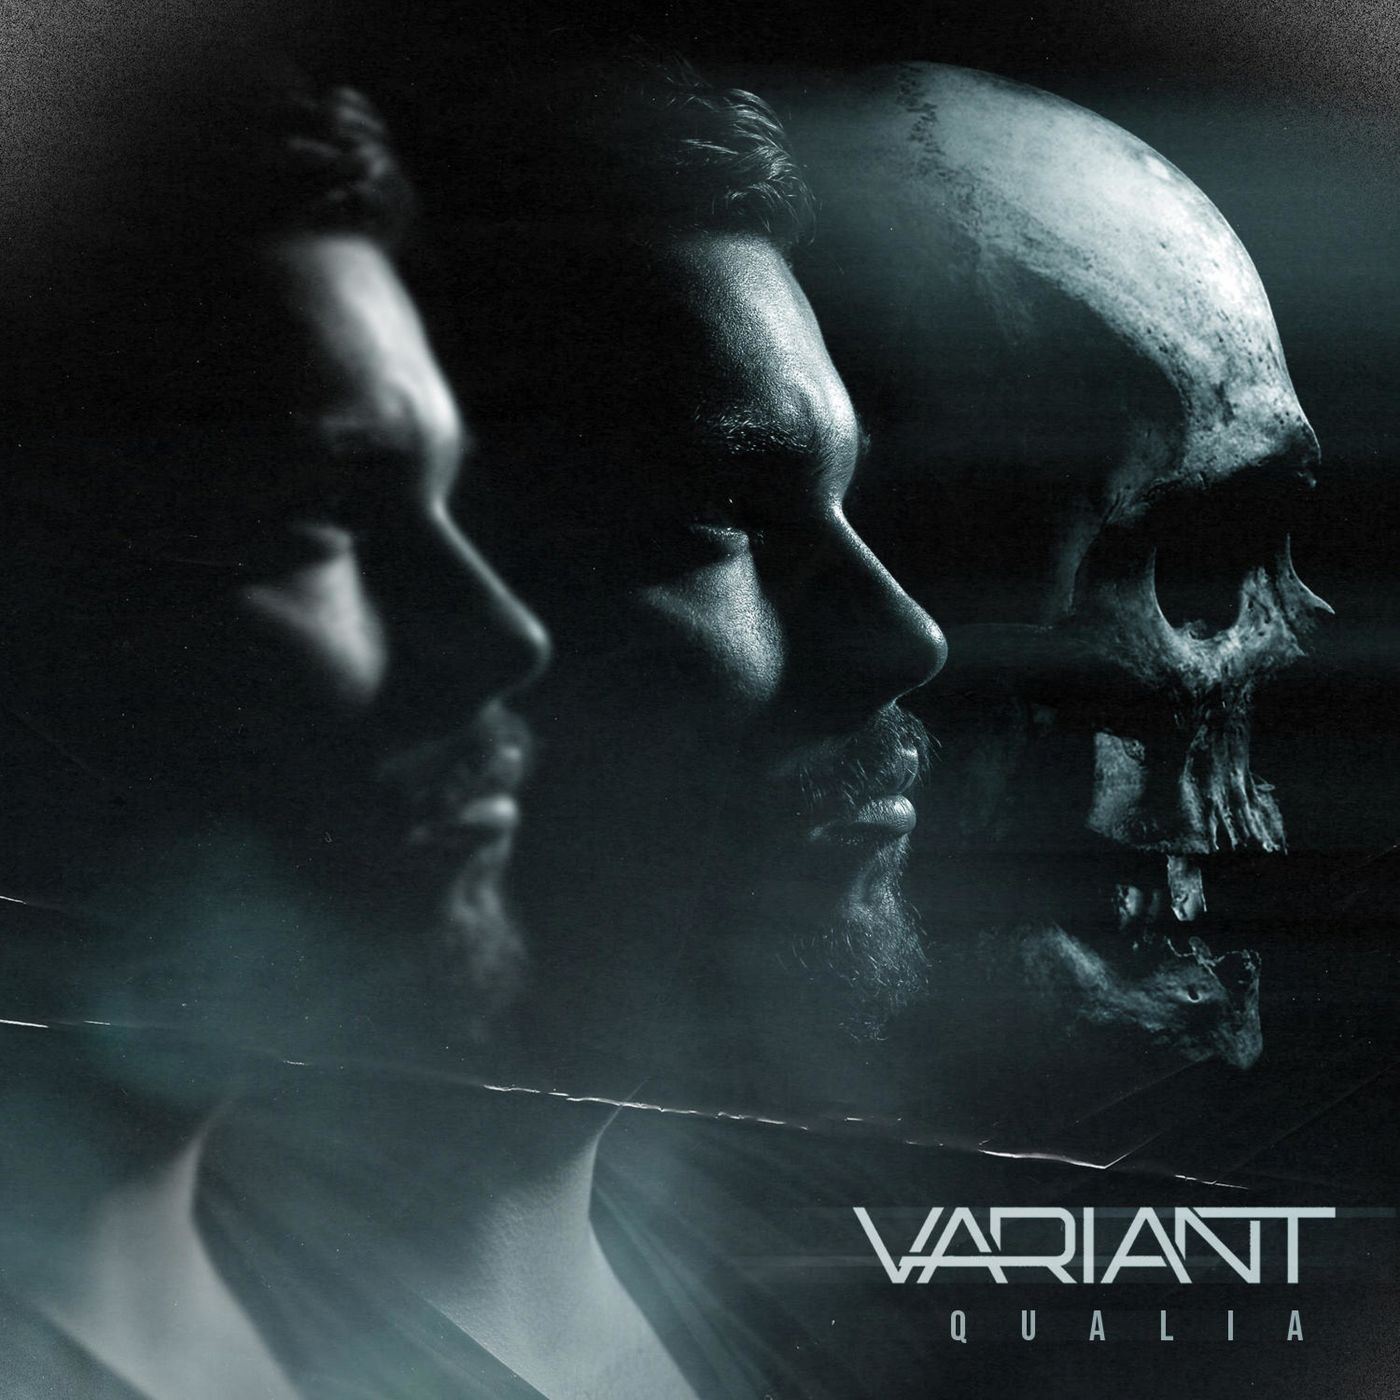 Variant - Qualia [single] (2021)